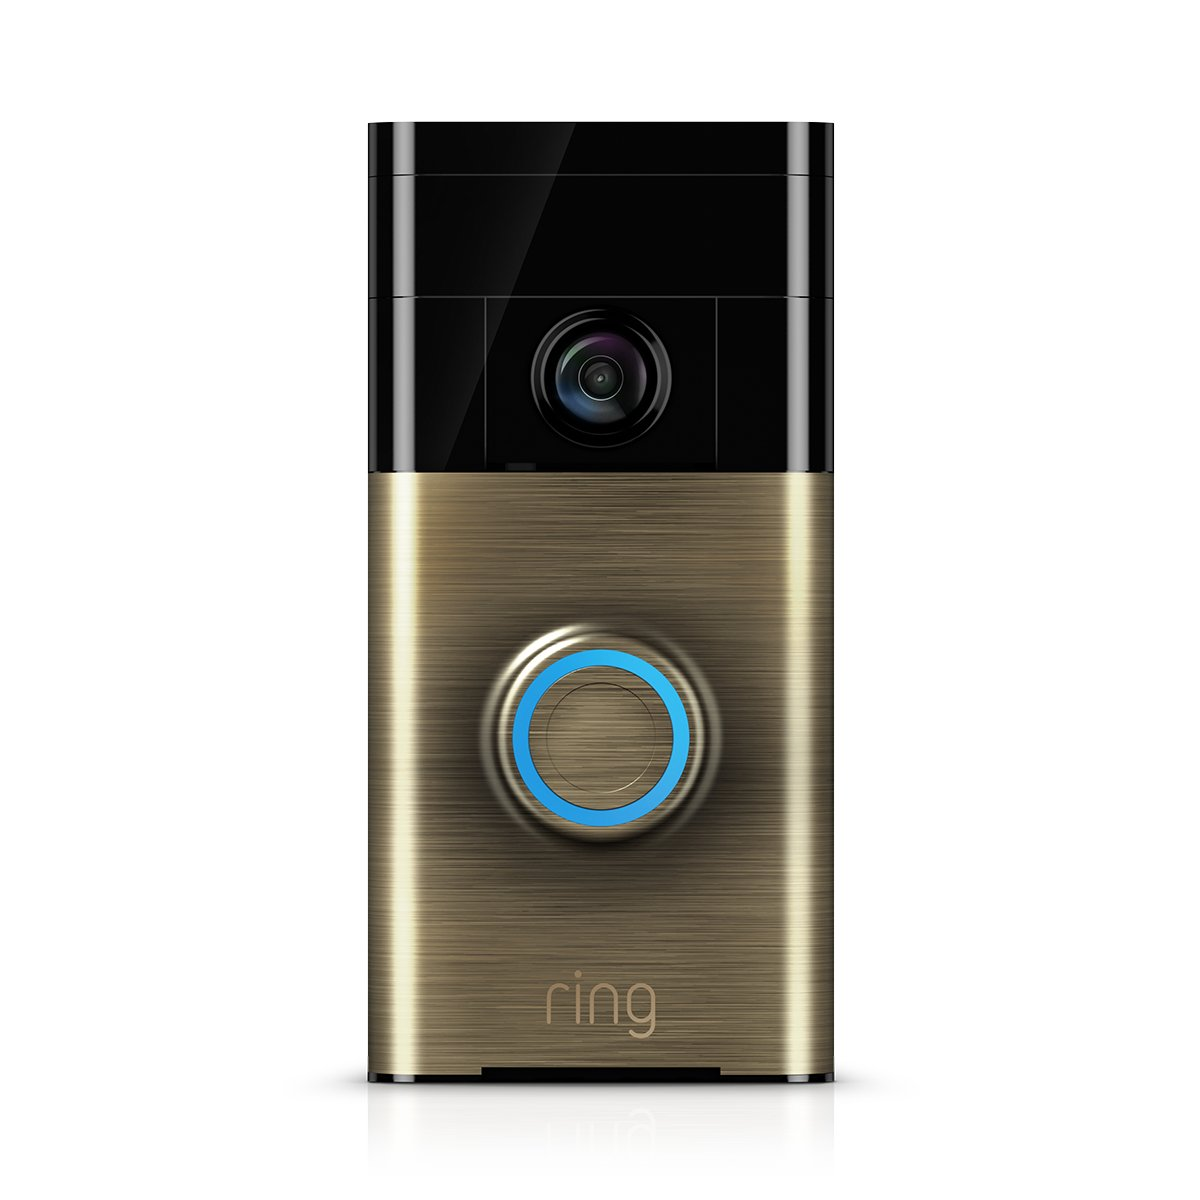 Ring Video Doorbell - Video Tü rklingel 720p HD Video, Gegensprechfunktion, Bewegungsmelder, WLAN, Venetian Bronze 8VR1S5-VEU0